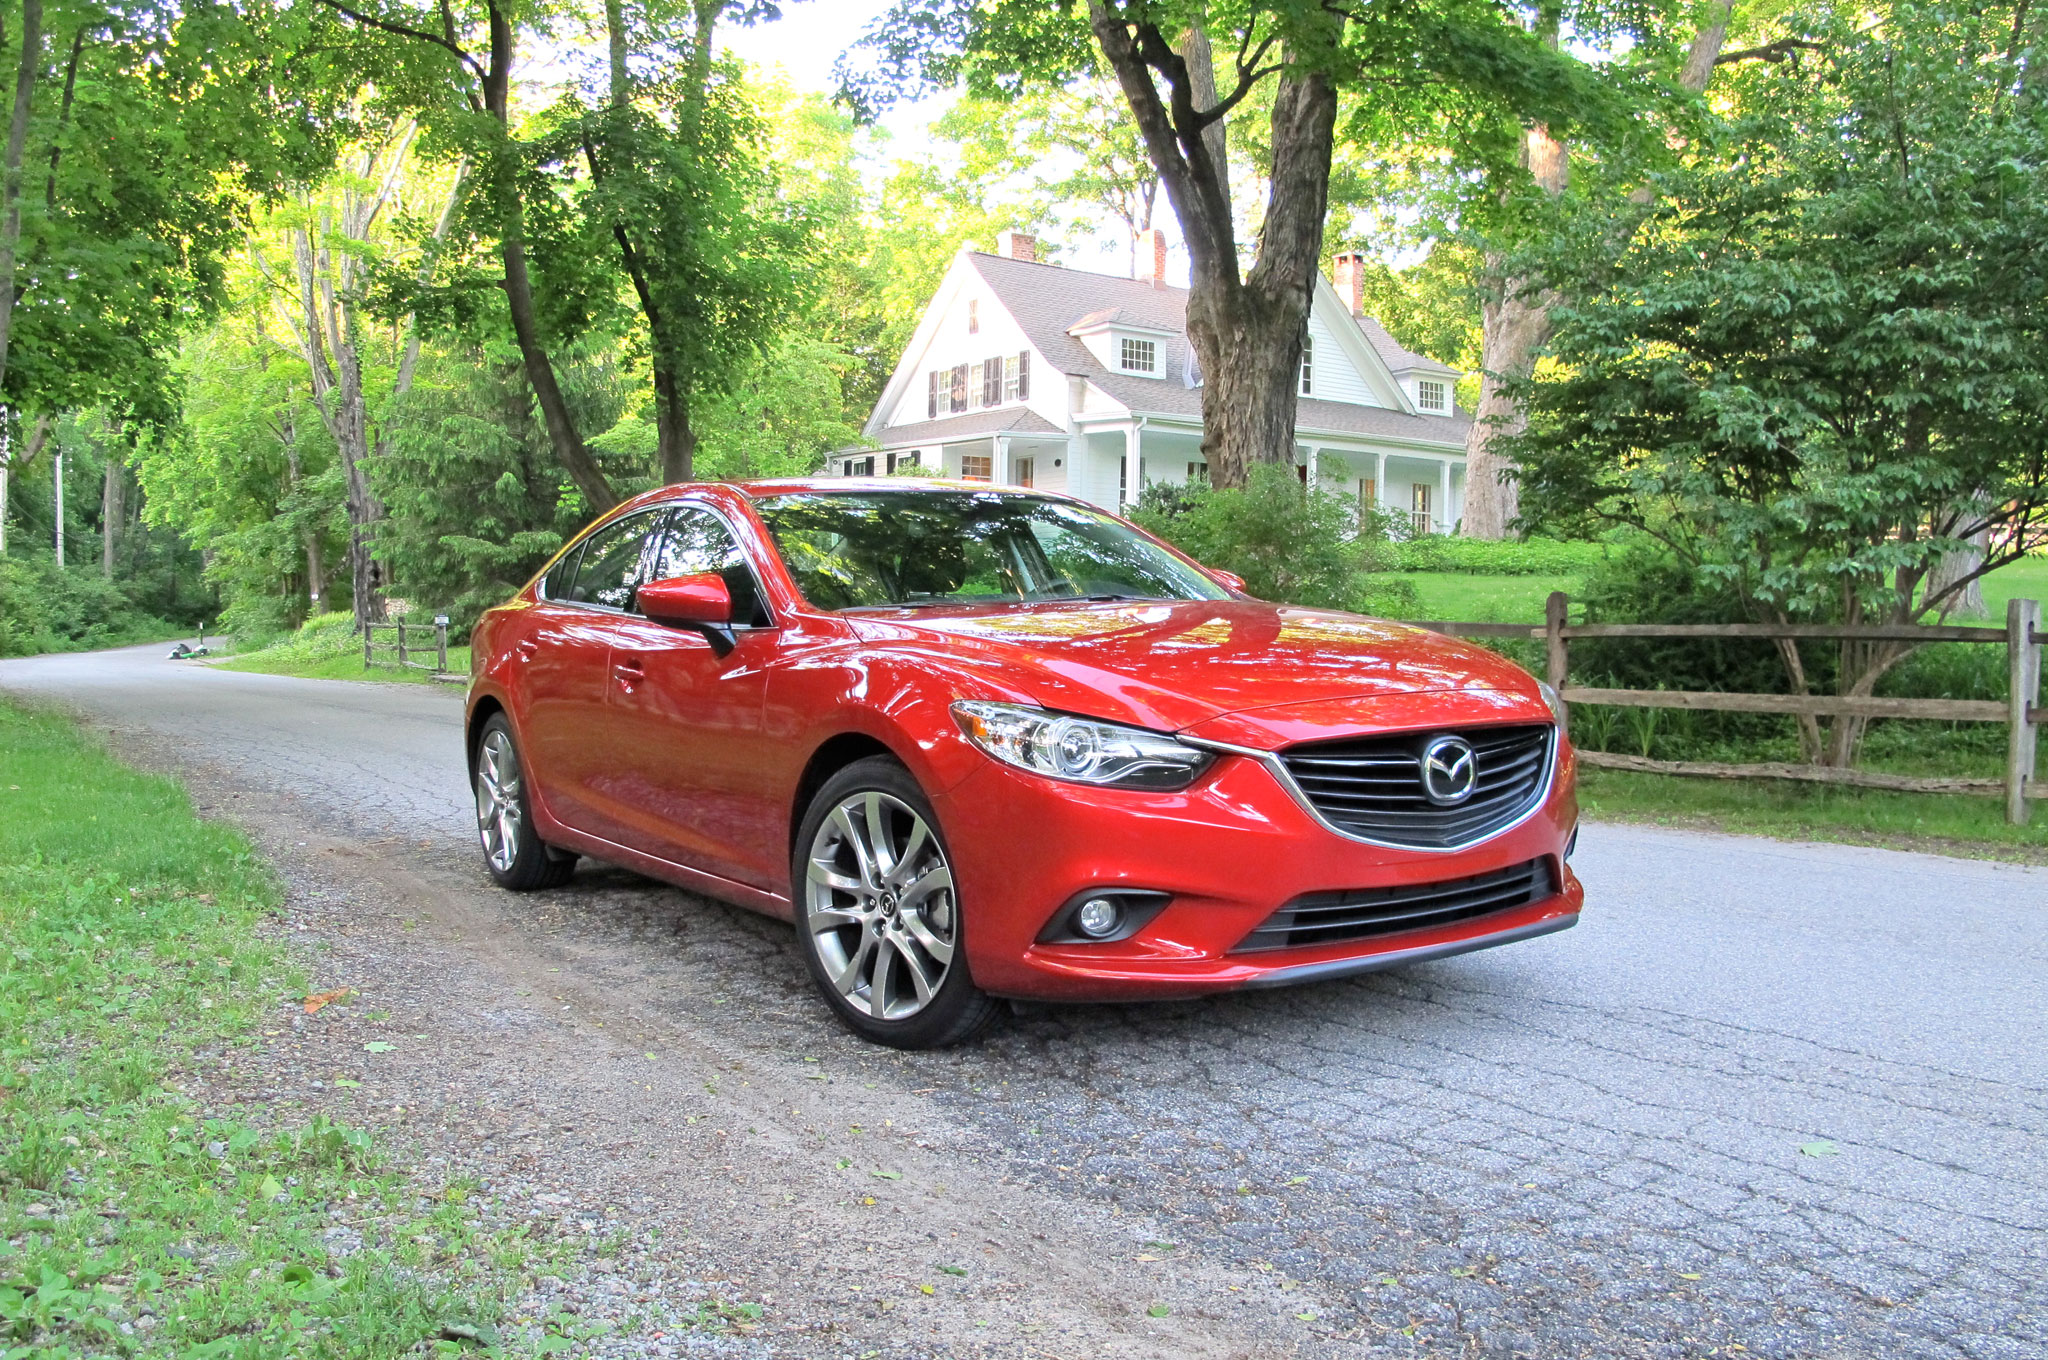 2014 Mazda 6 Front Right View1